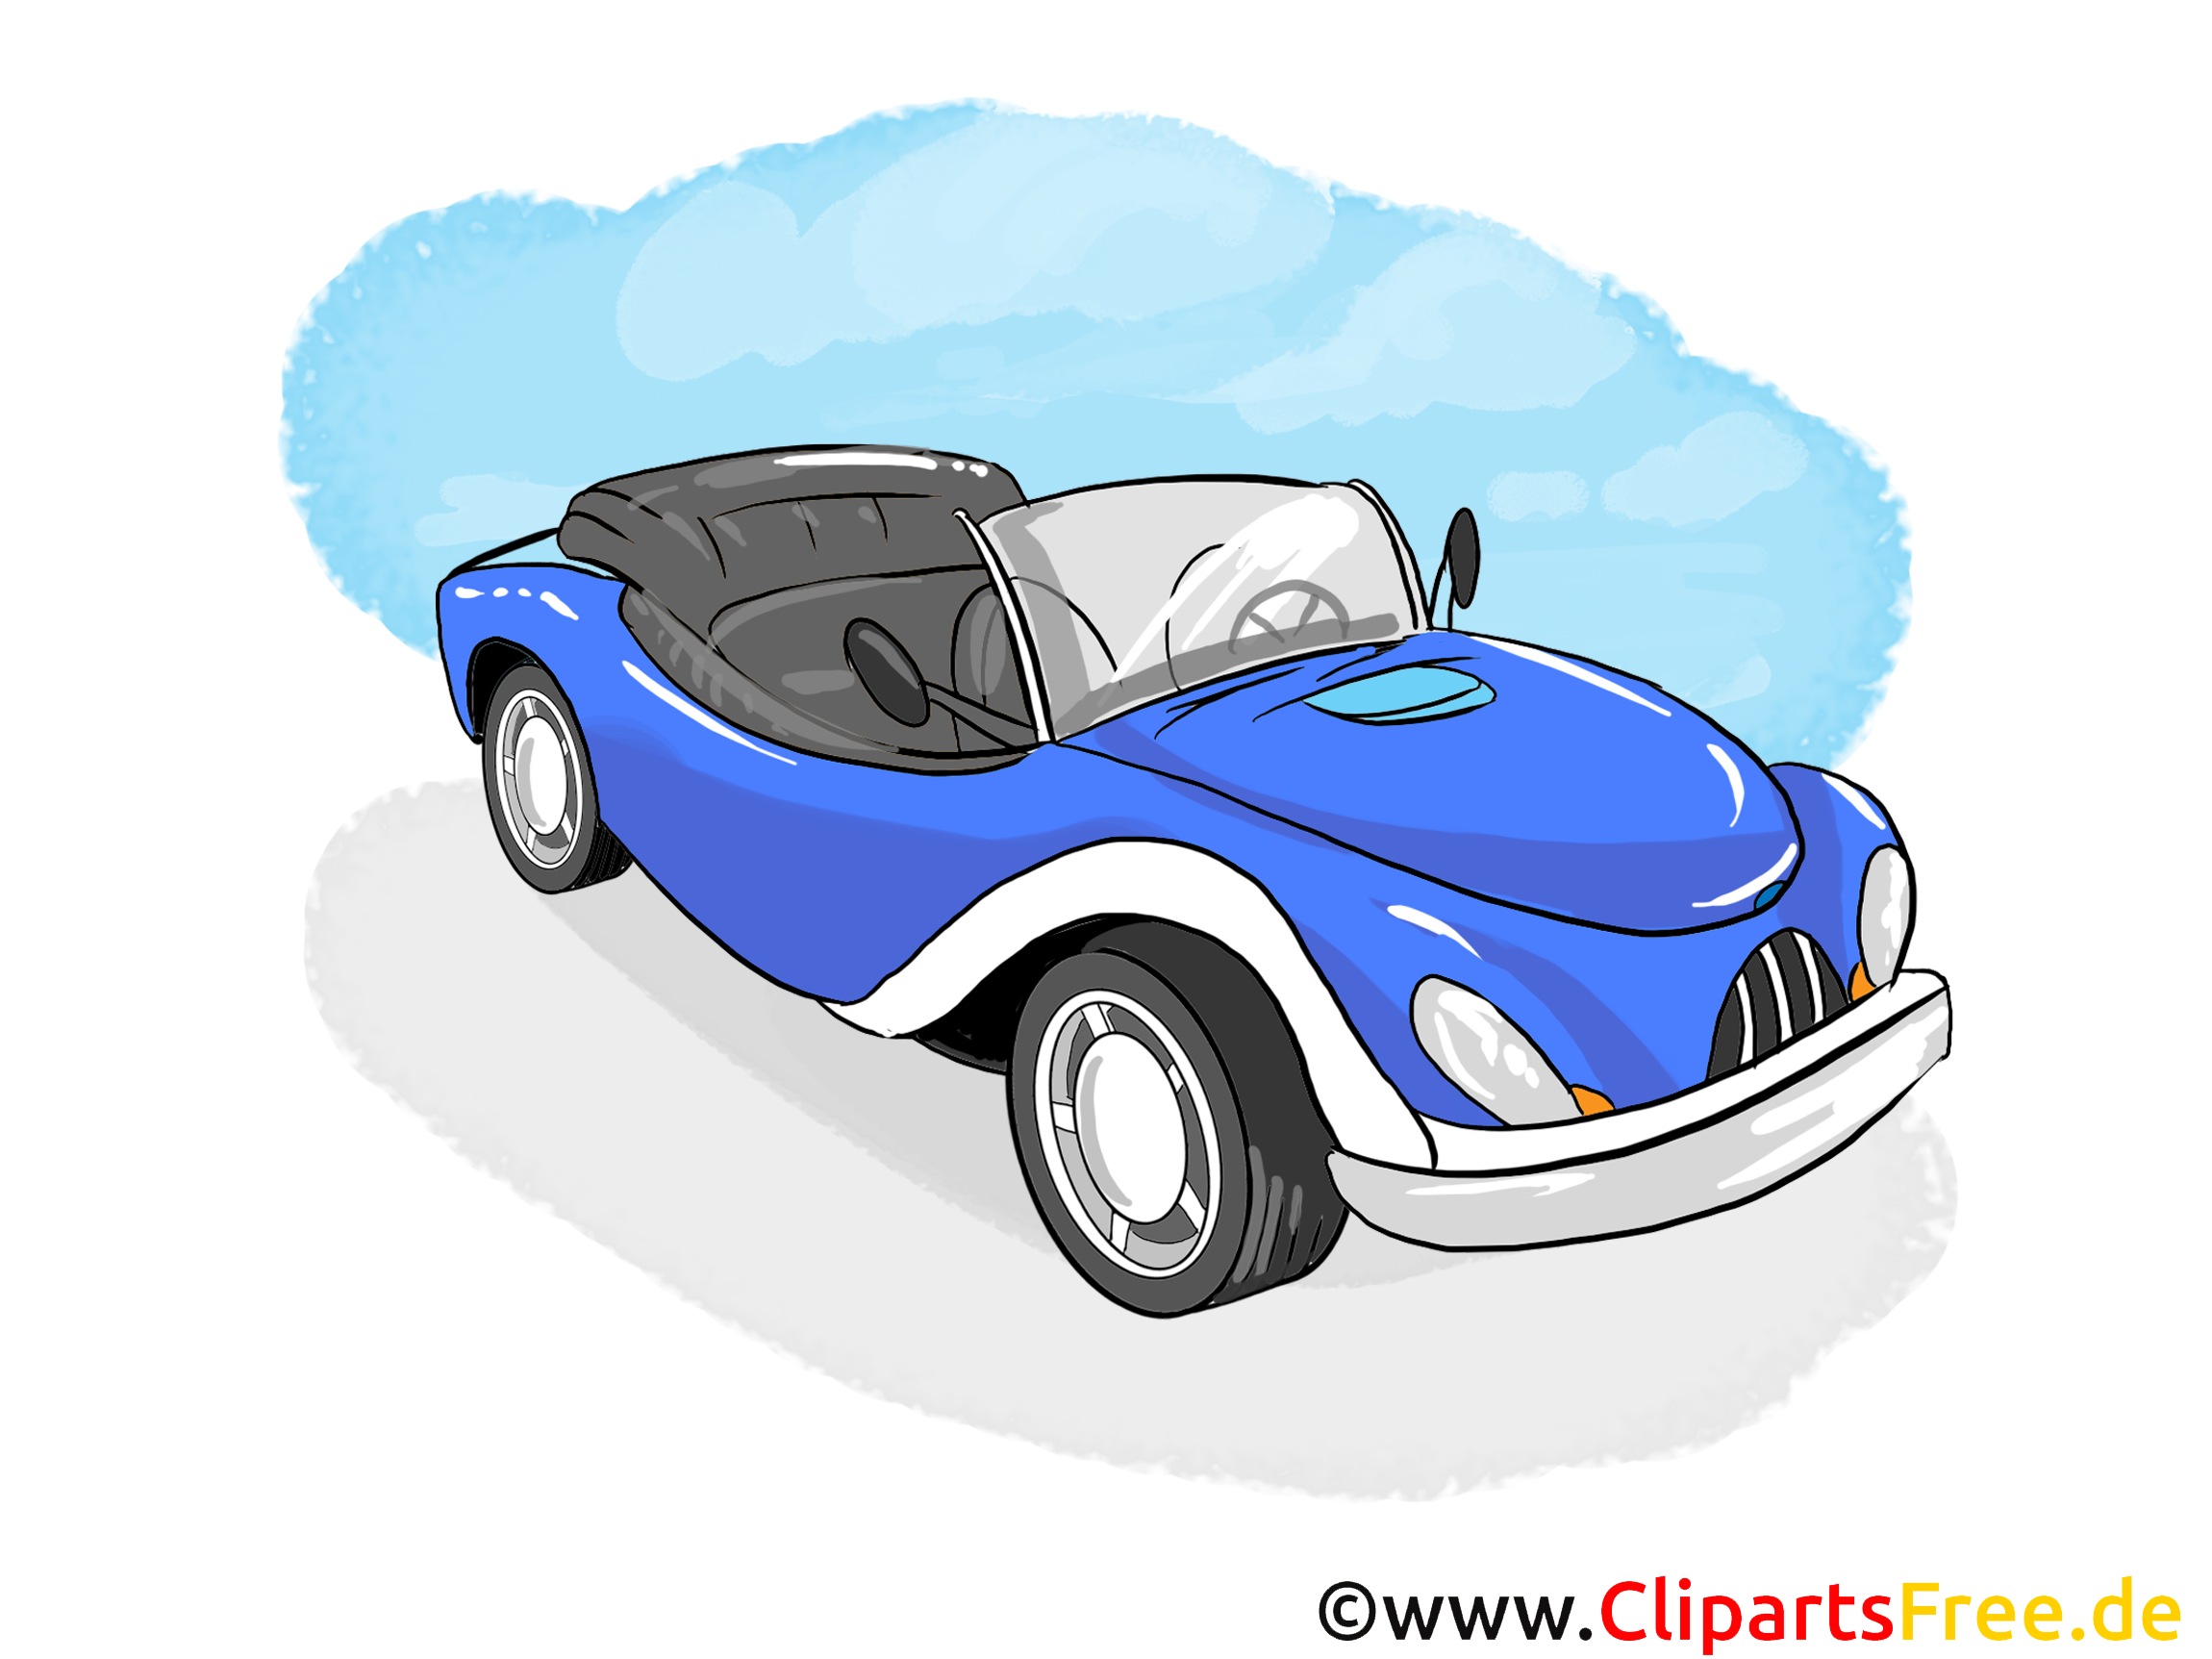 cabrio vehicle clip art free. Black Bedroom Furniture Sets. Home Design Ideas